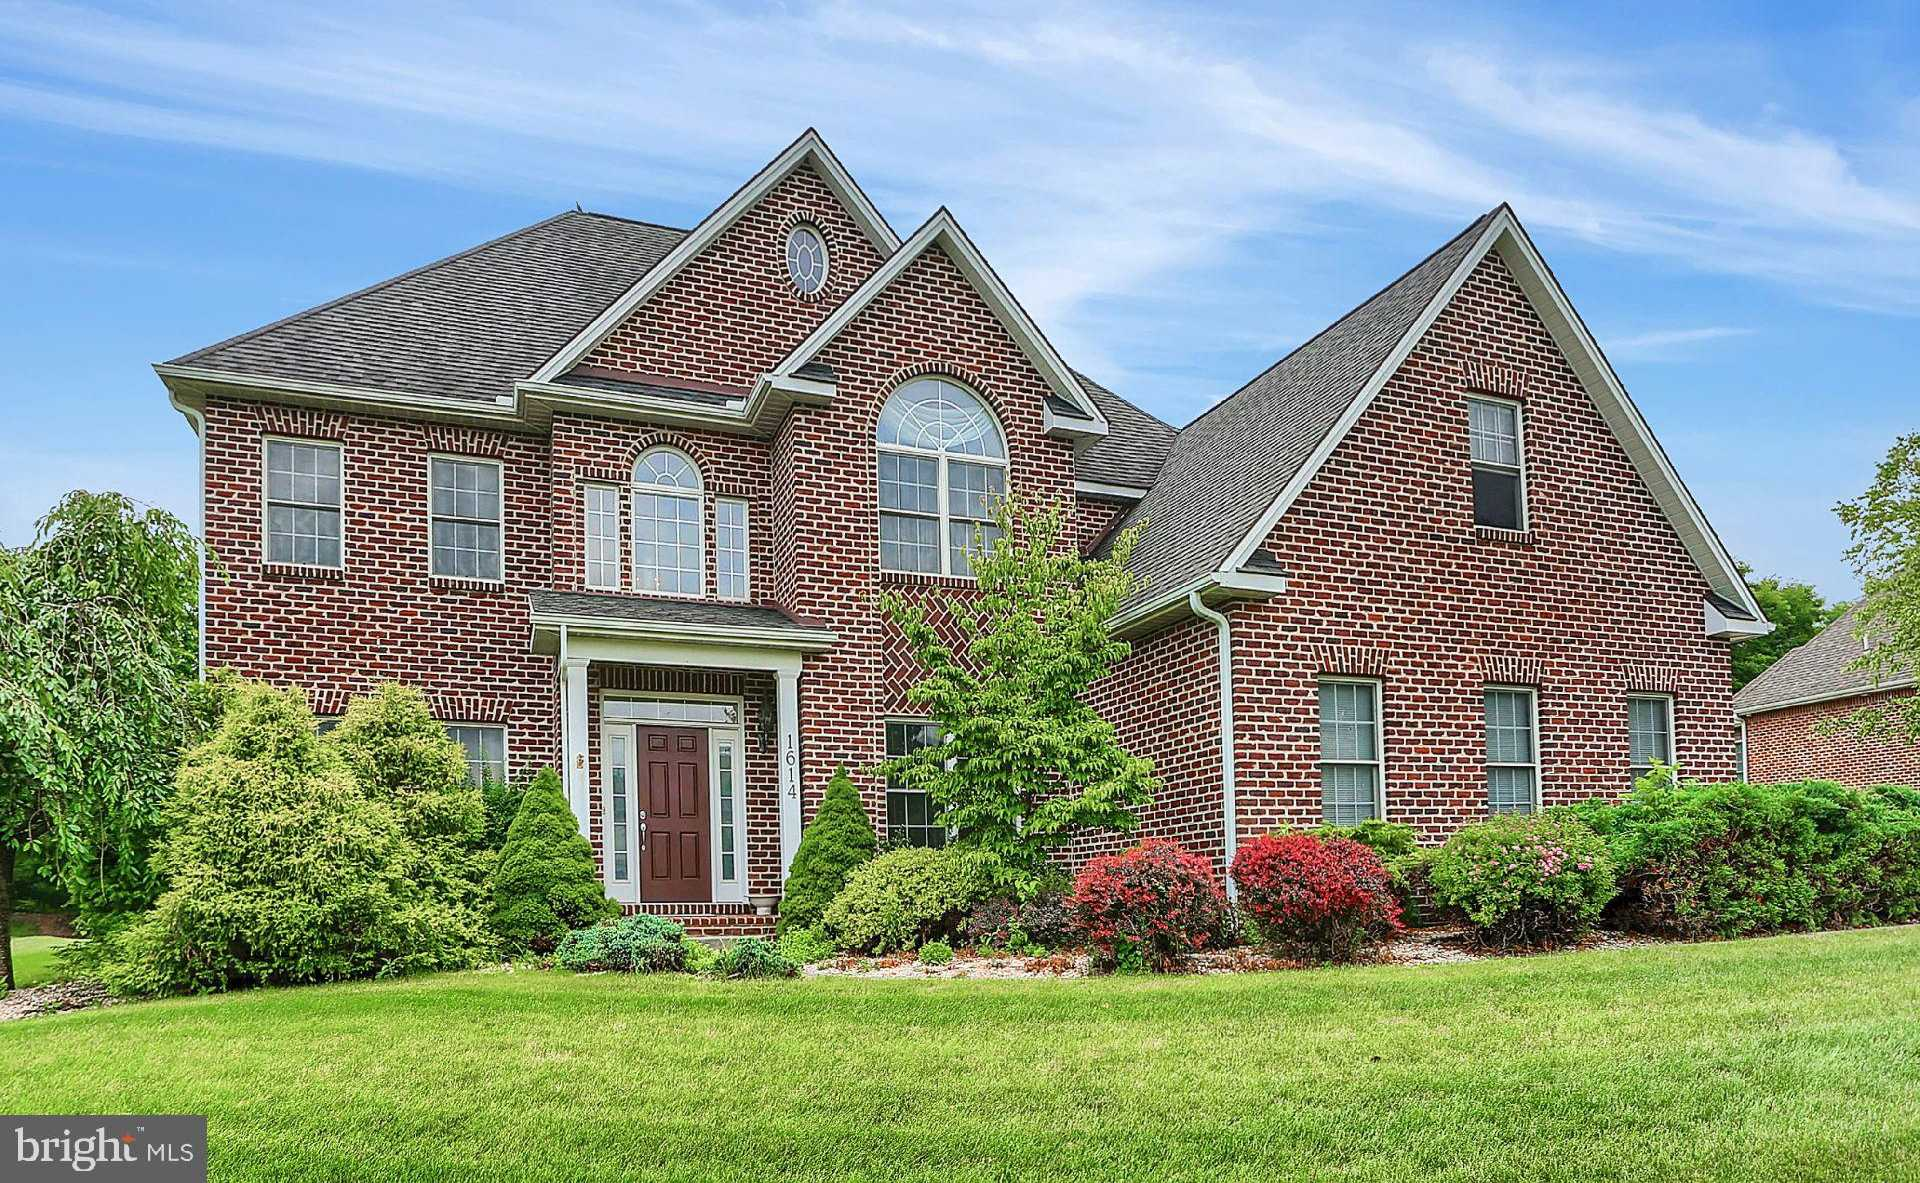 $515,000 - 5Br/4Ba -  for Sale in High Meadow, Mechanicsburg